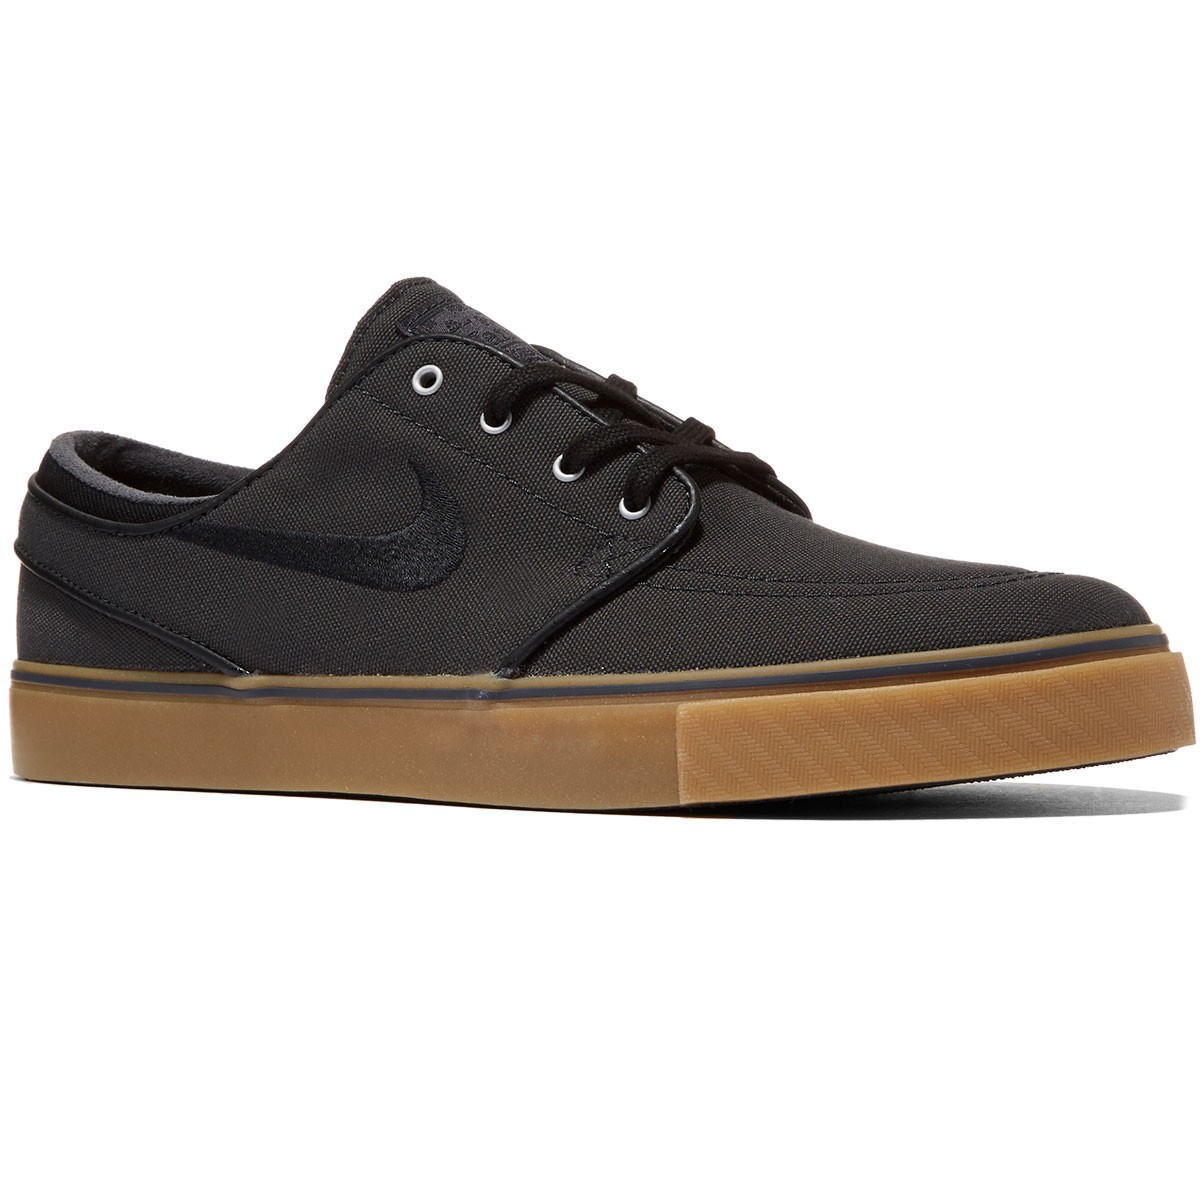 Nike Zoom Stefan Janoski Shoes - Anthracite/Gum/Silver - 7.0